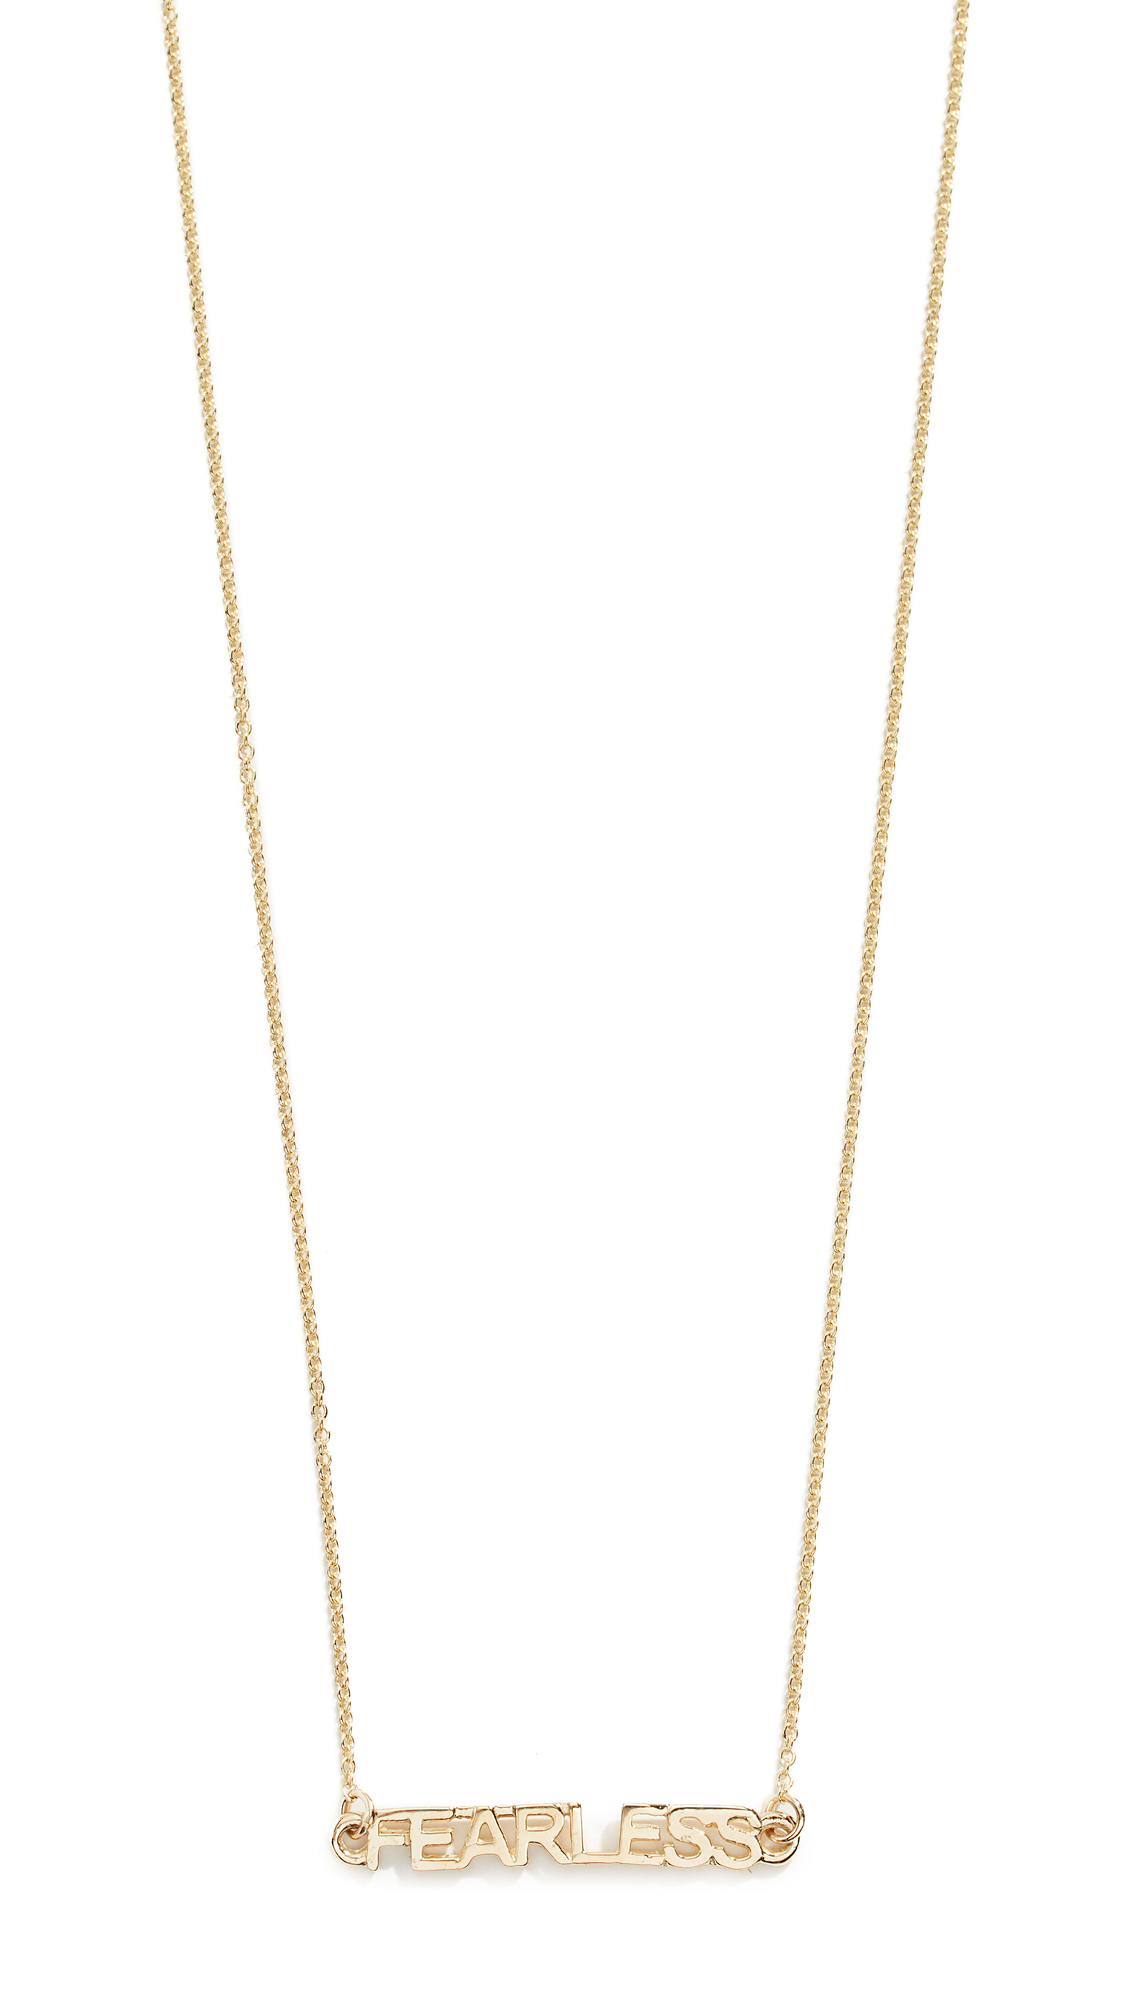 EDEN PRESLEY Fearless  Necklace in Yellow Gold